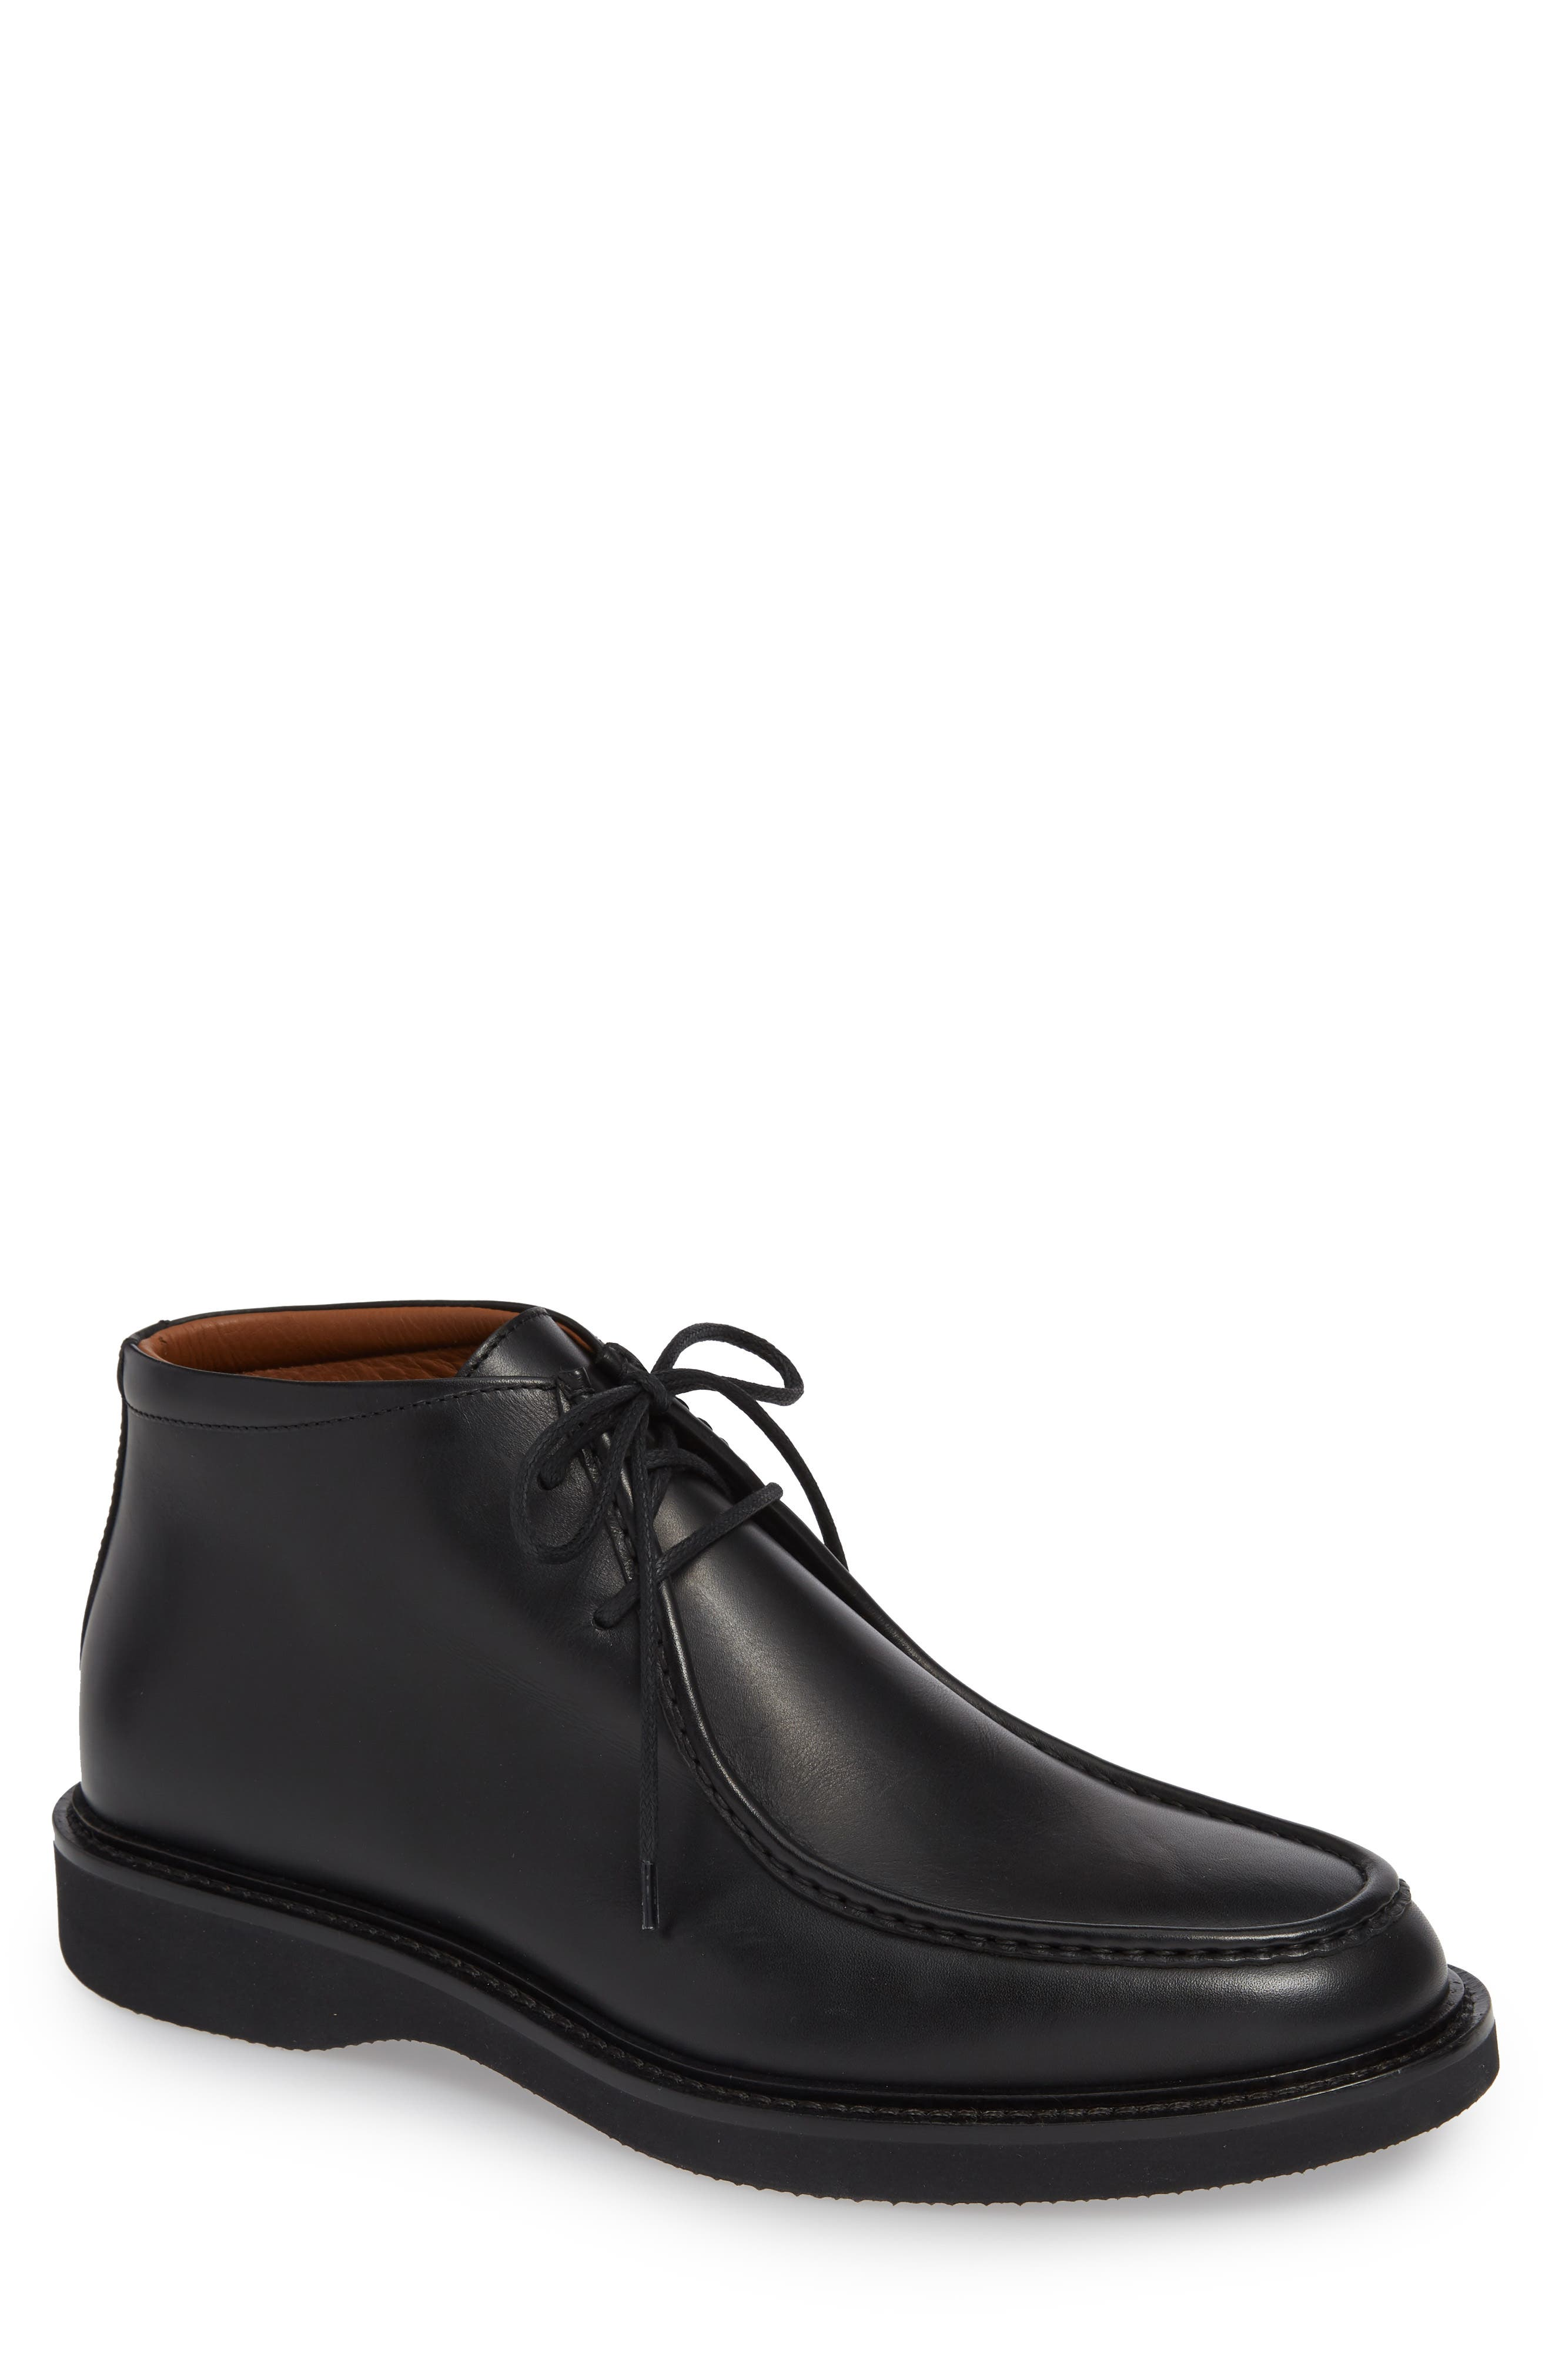 Kyle Weatherproof Chukka Boot,                         Main,                         color, BLACK LEATHER